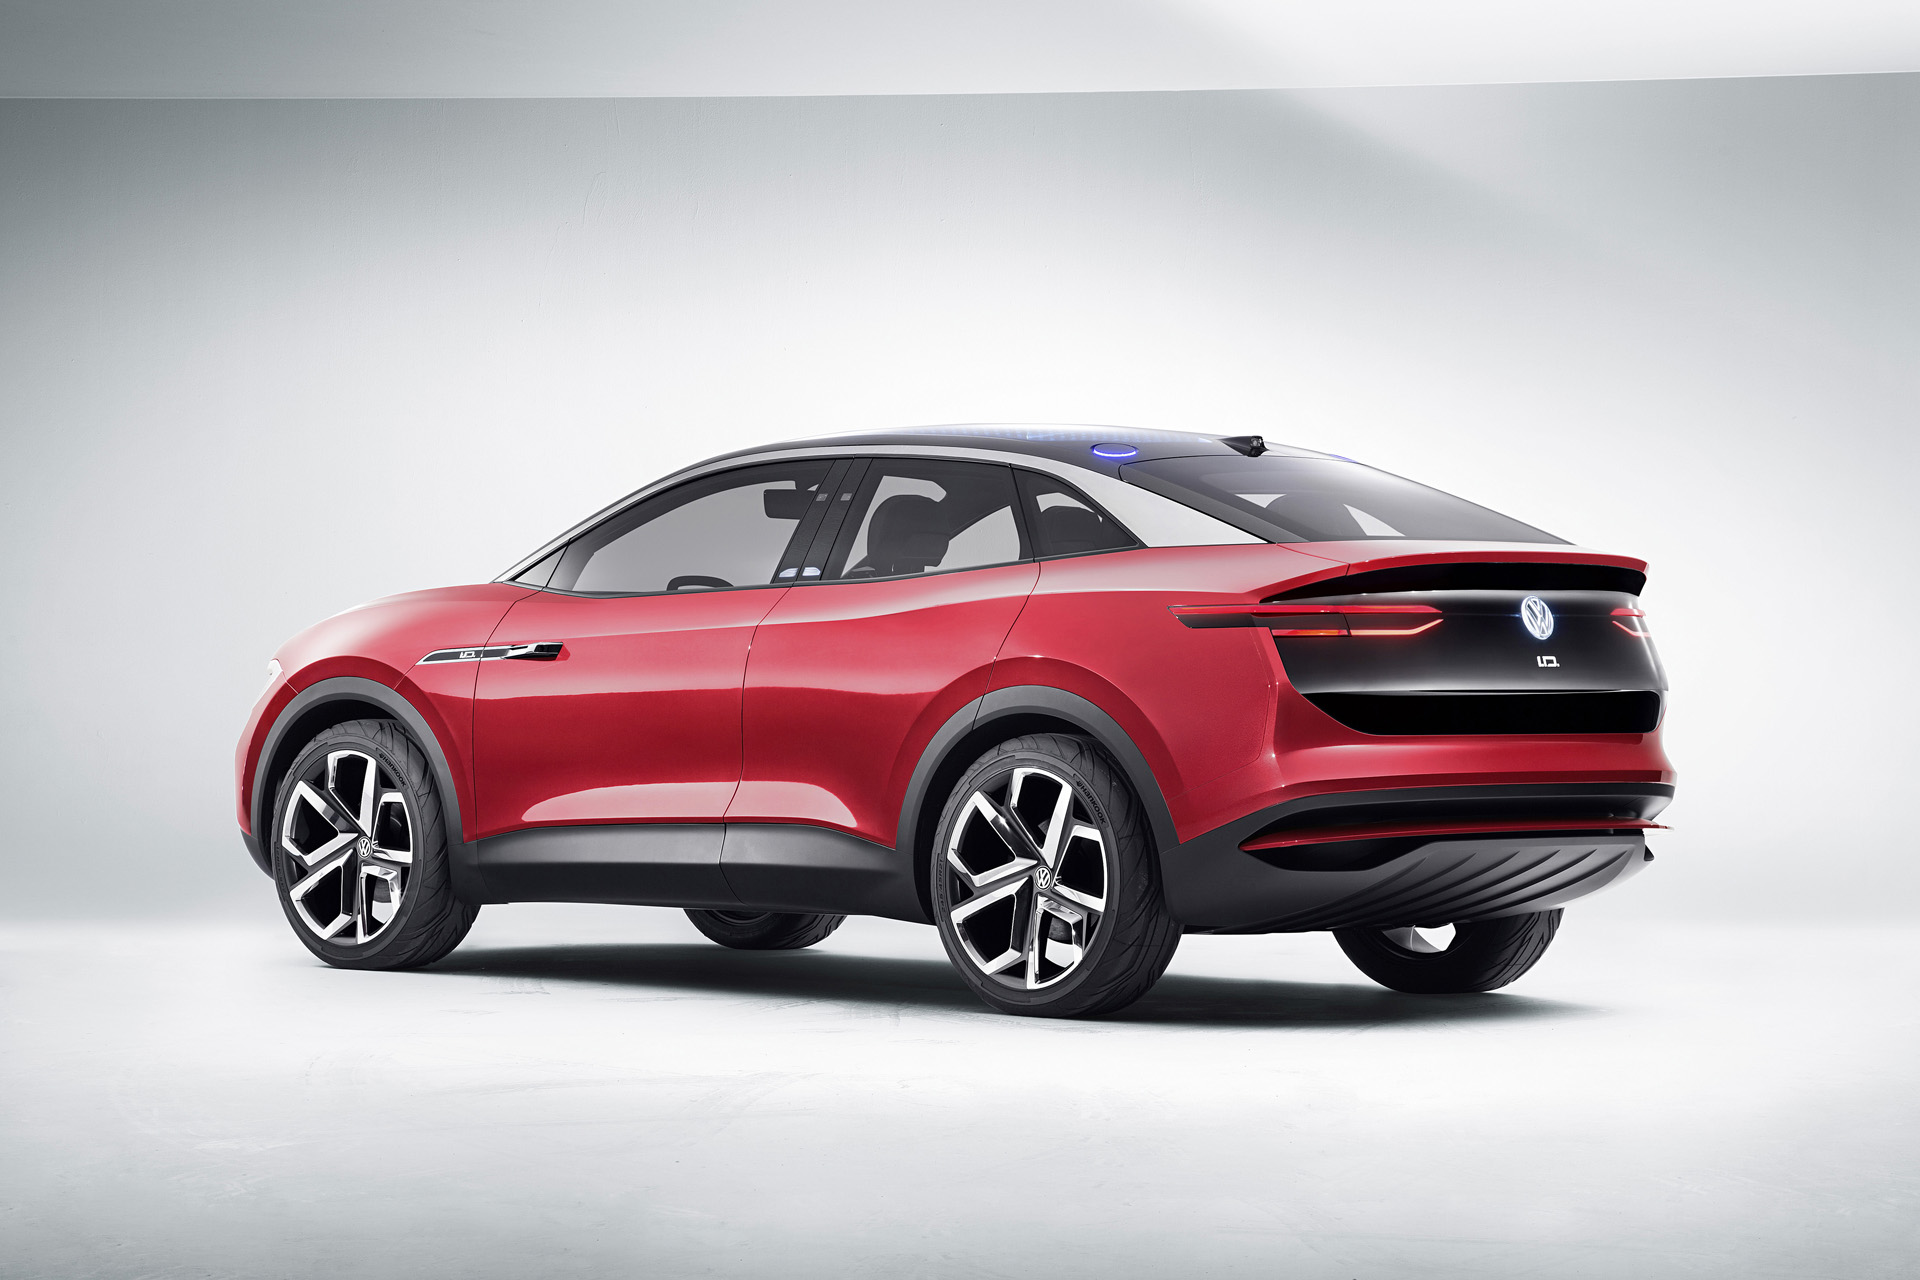 Electric Car News >> Vw S Us Electric Car Pricing Apples To Apples Vs